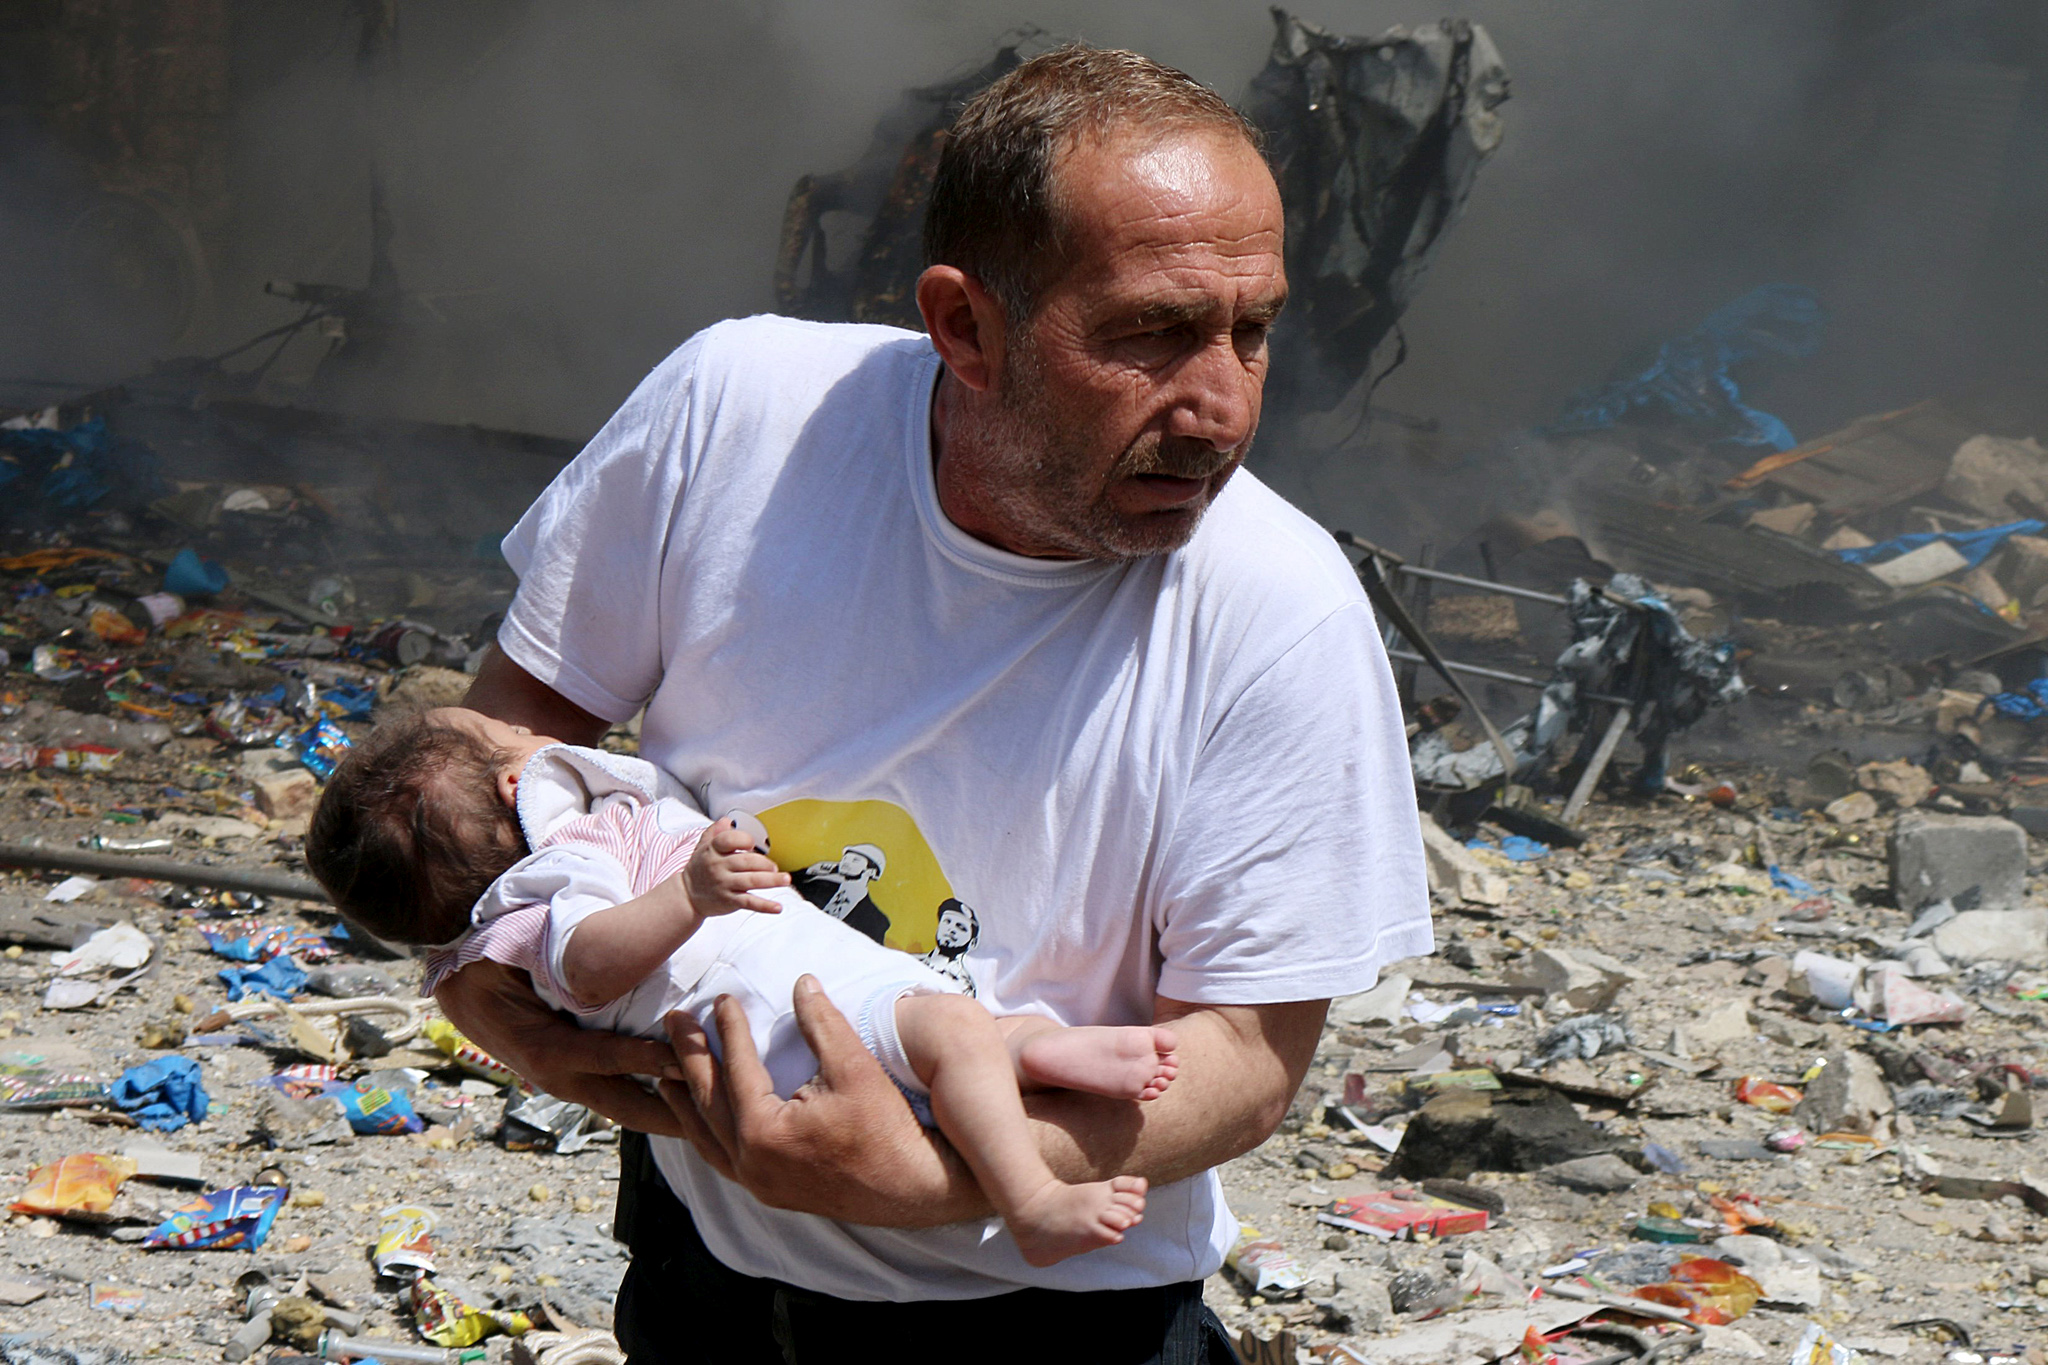 A man holds a baby that survived what activists said was a site hit by a barrel bomb dropped by forces loyal to Syrian President Bashar al-Assad at the old city of Aleppo...A man holds a baby that survived what activists said was a site hit by a barrel bomb dropped by forces loyal to Syrian President Bashar al-Assad at the old city of Aleppo June 3, 2015. REUTERS/Abdalrhman Ismail